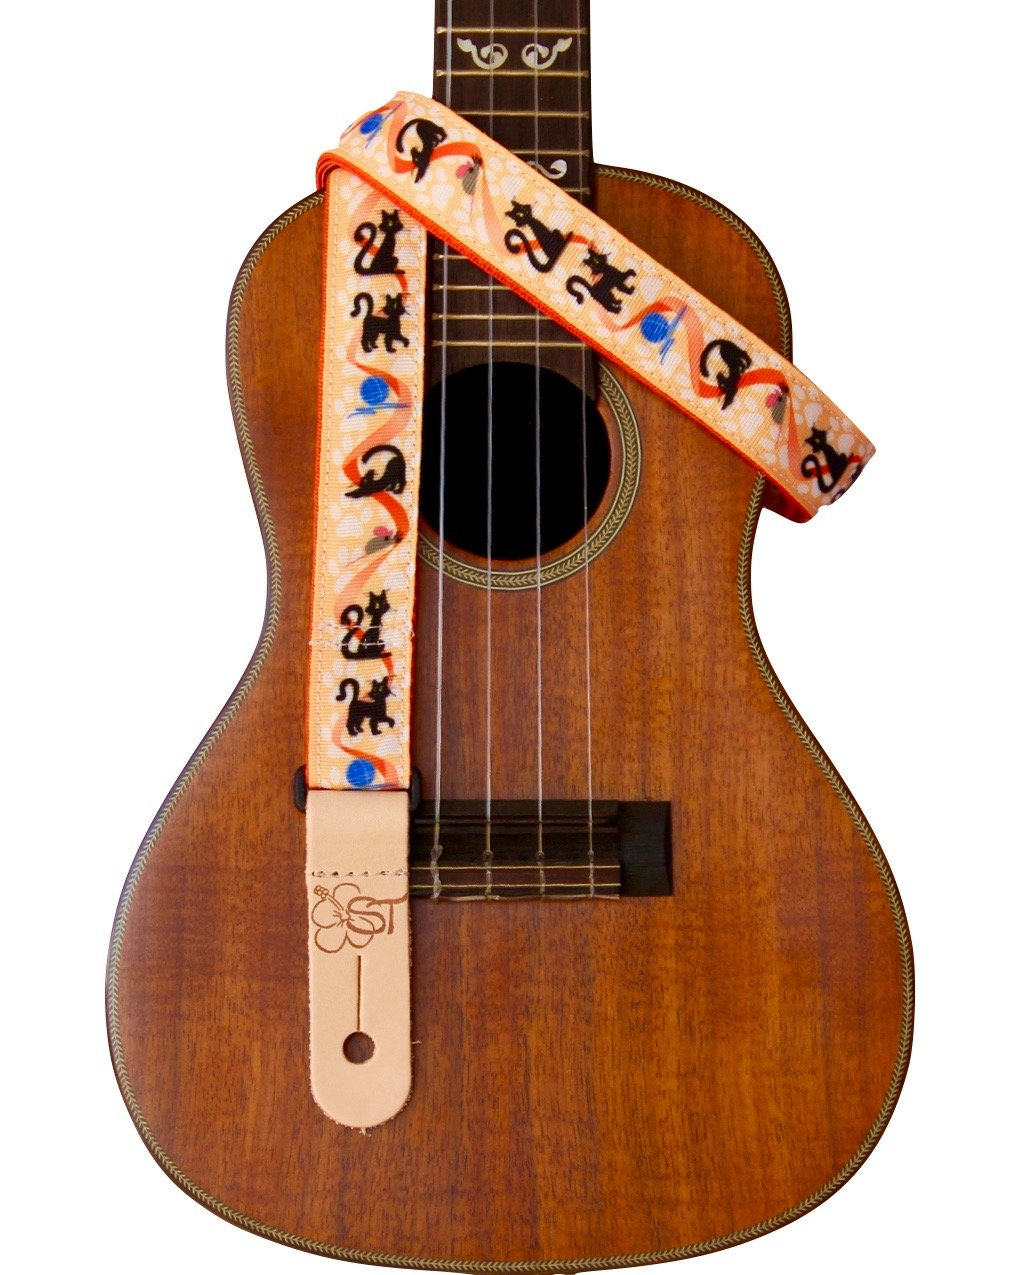 ST 1 Ukulele Strap - Cats on Orange